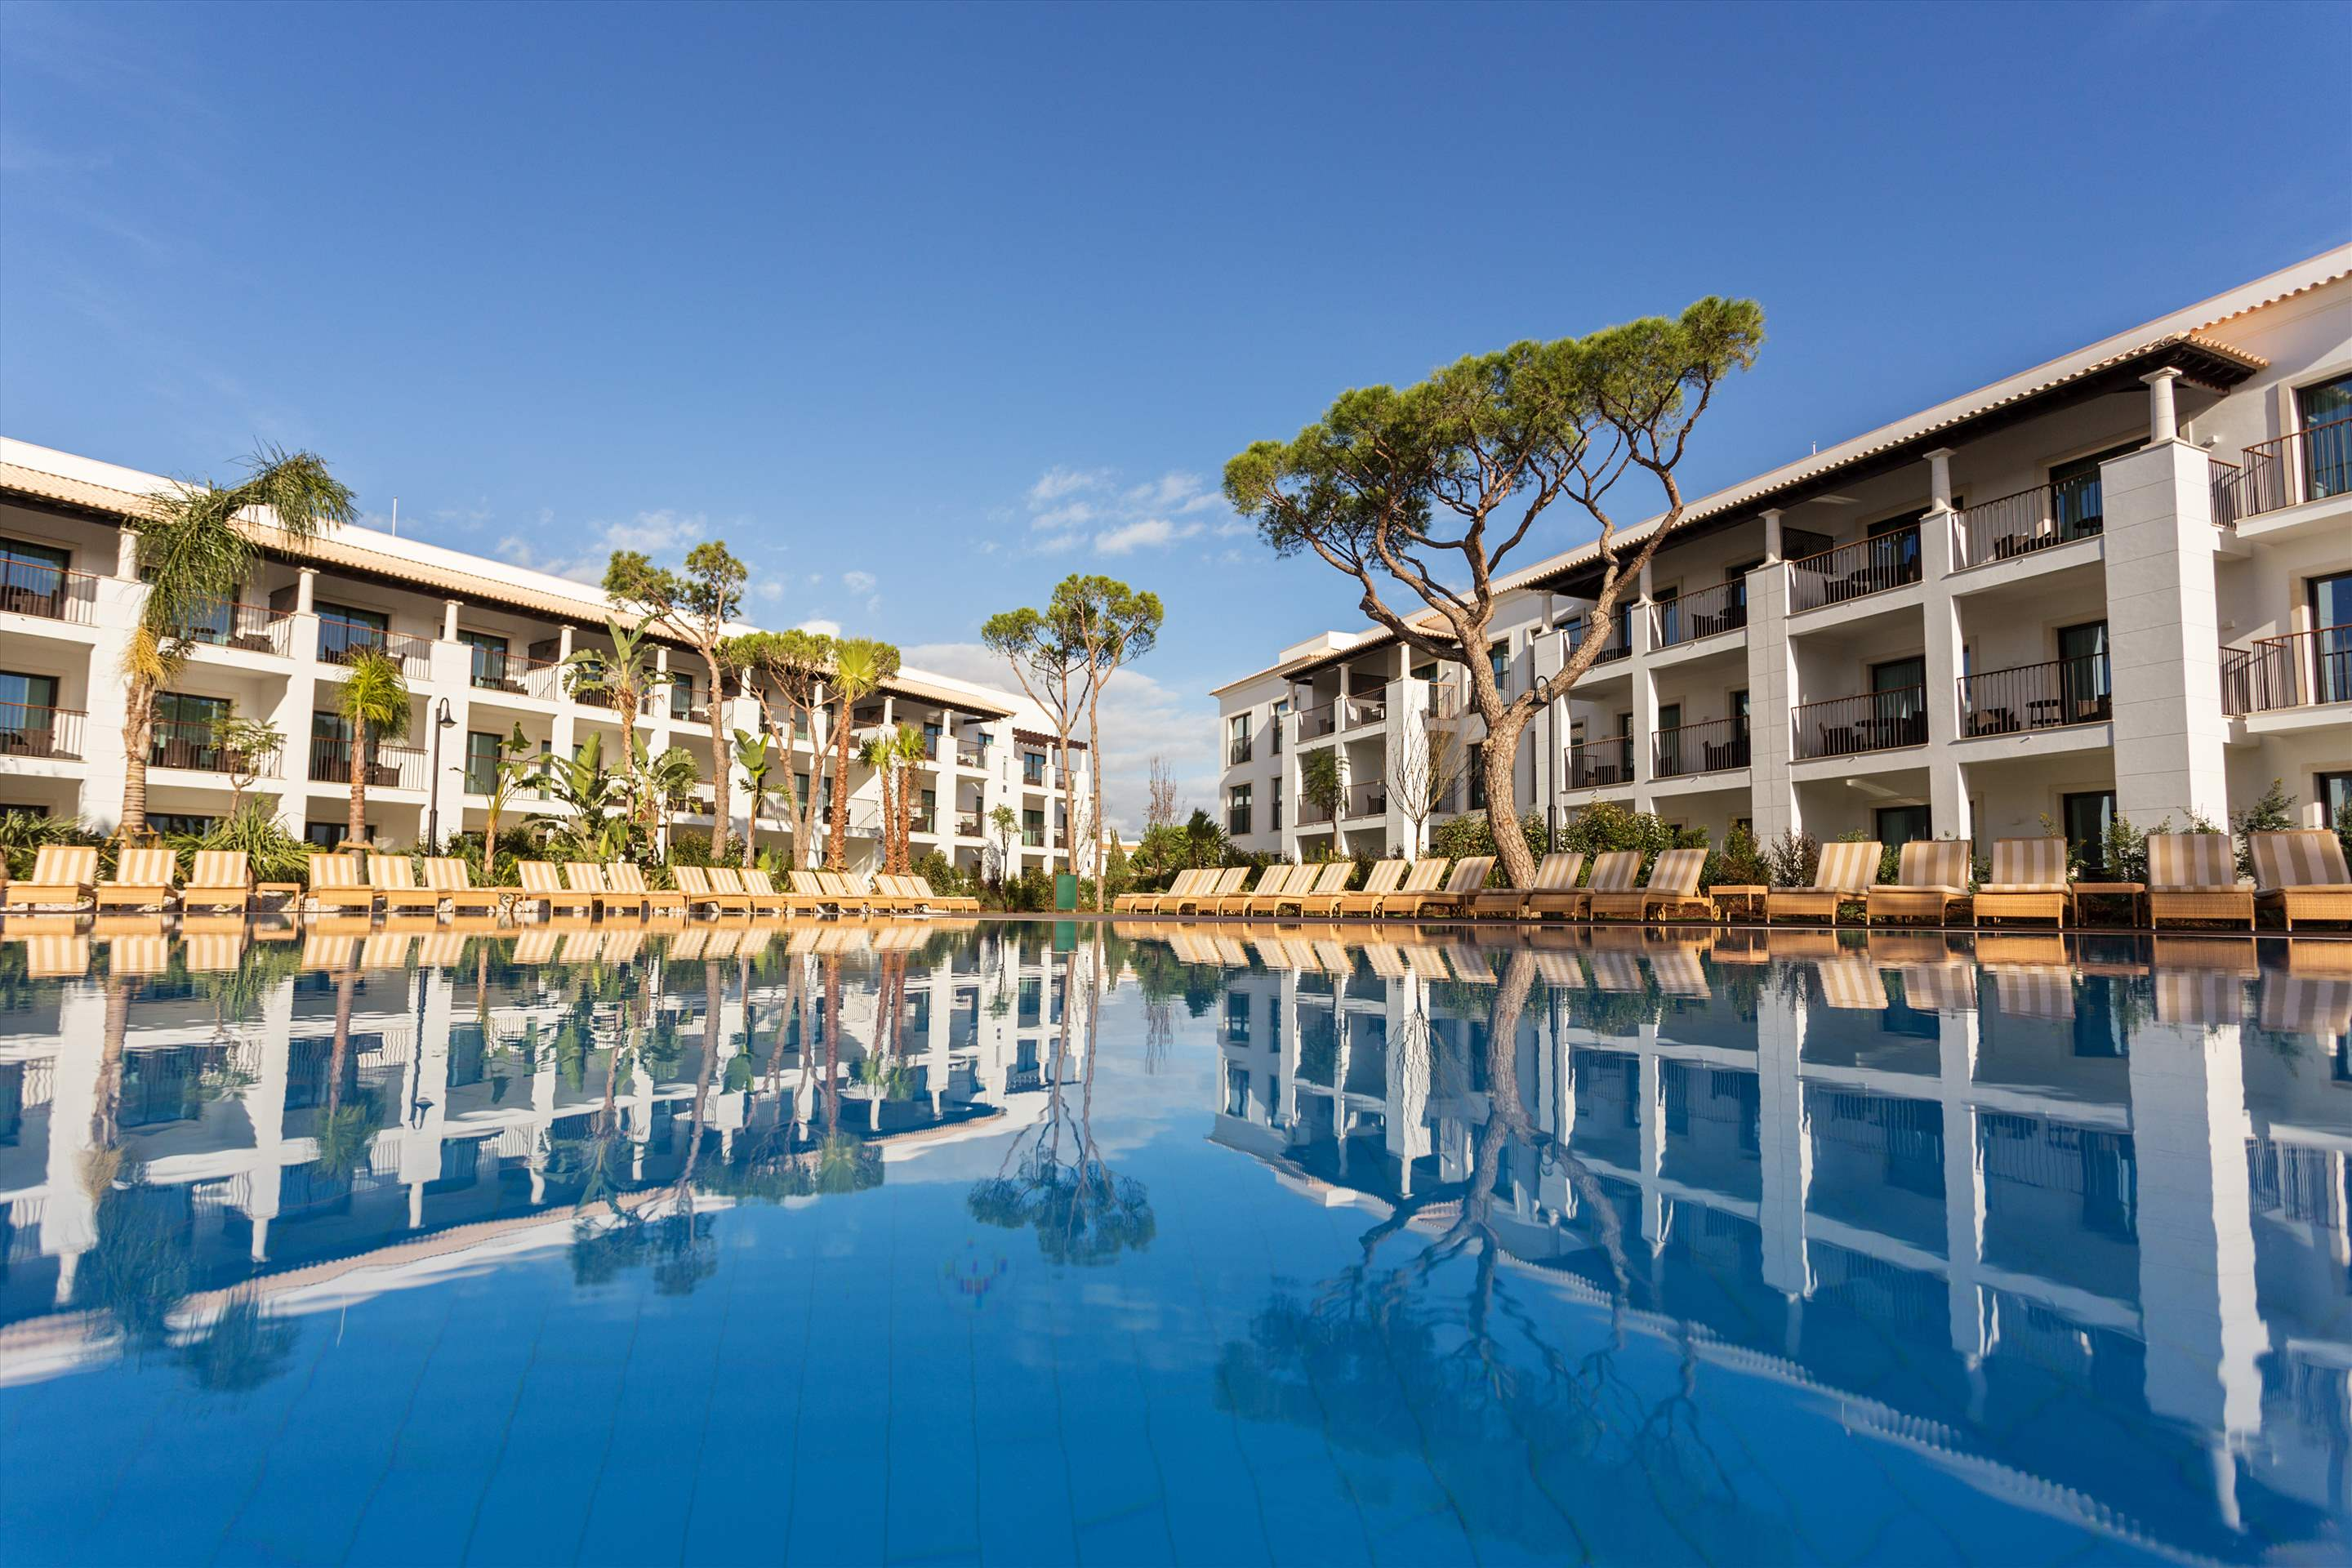 Pine Cliffs Gardens, One Bedroom Suite, S/C Basis, 1 bedroom apartment in Pine Cliffs Resort, Algarve Photo #8